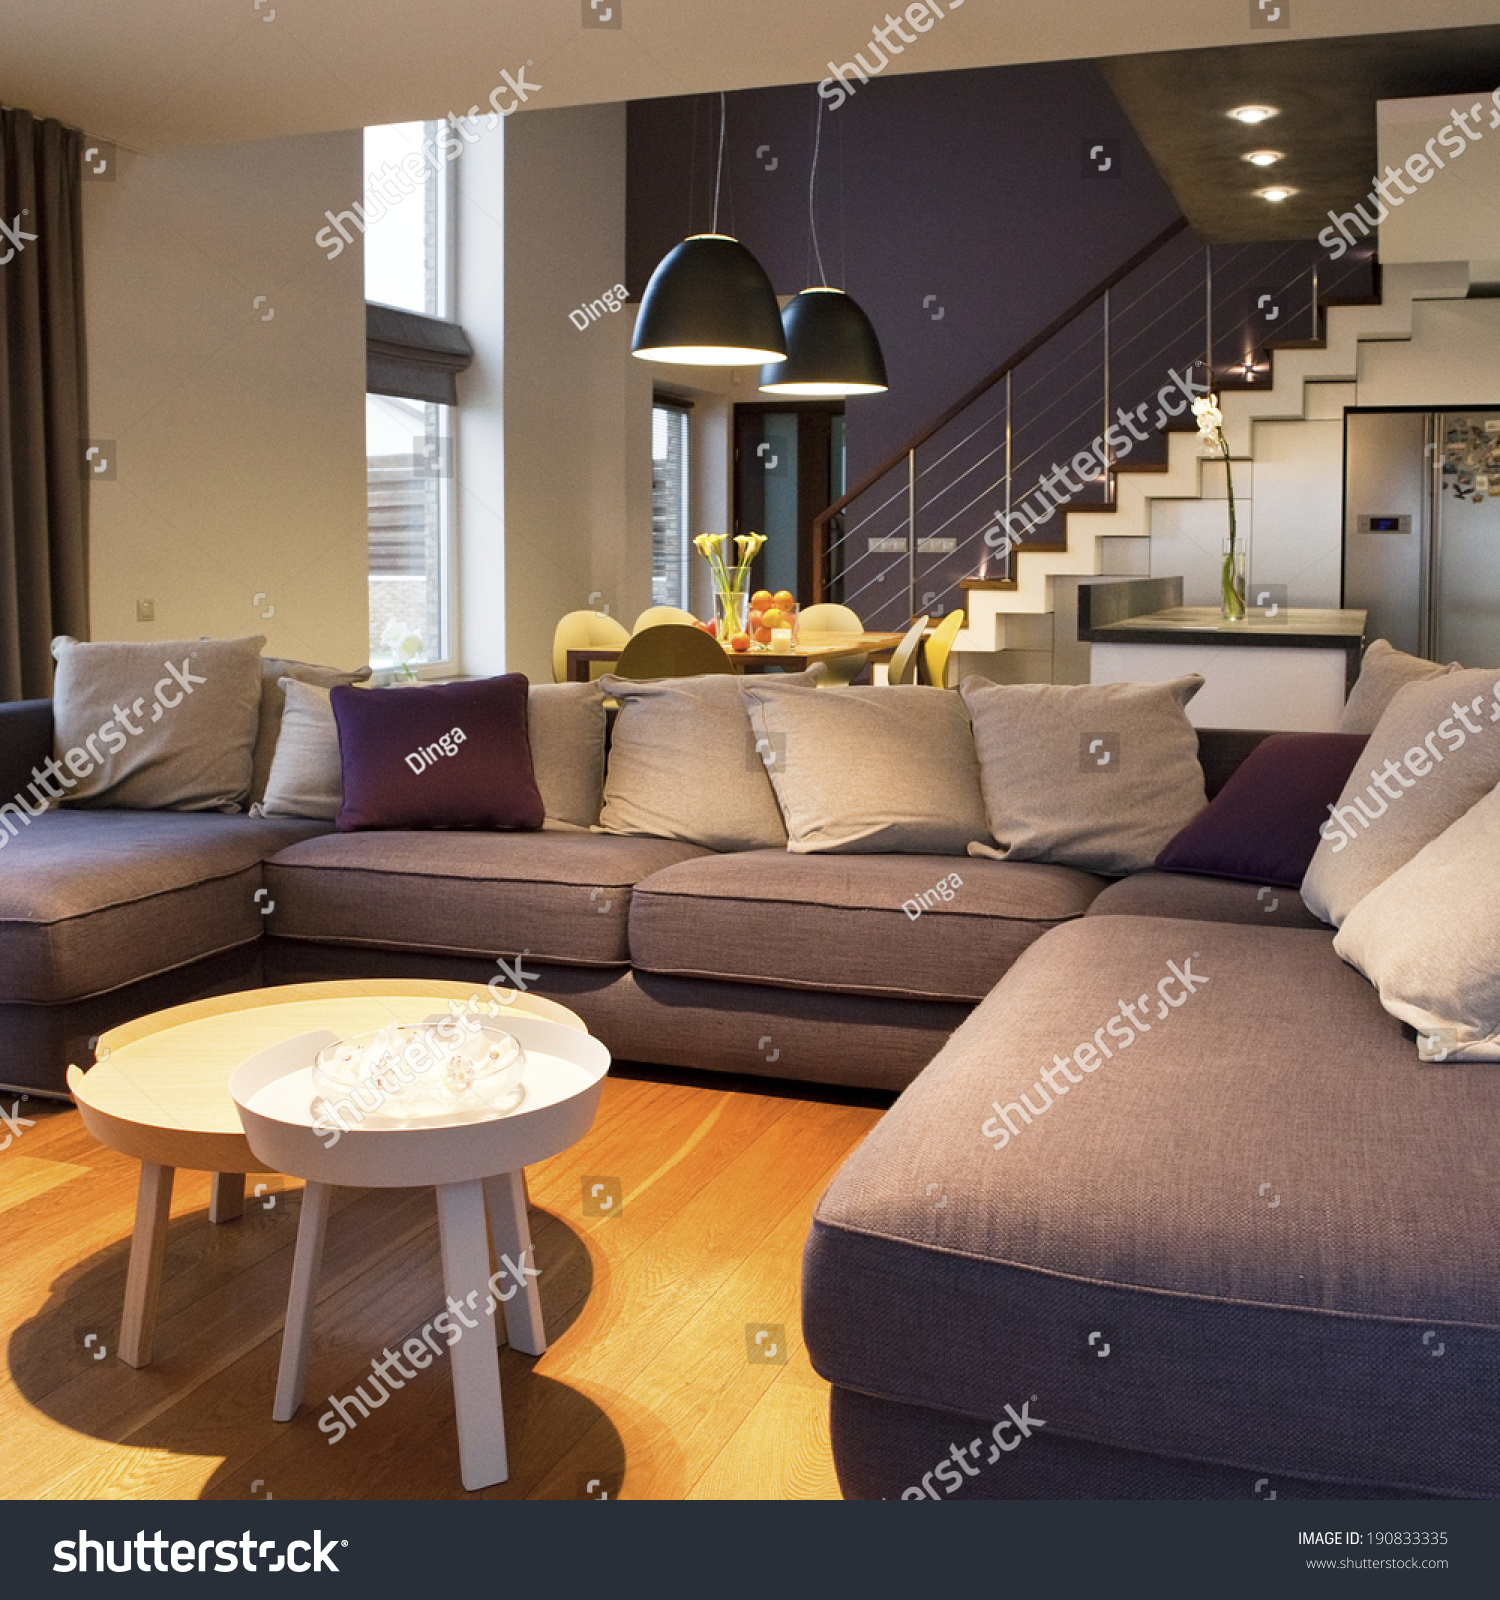 Cozy Living Room Vector Illustration: Cozy Living Room At Foreground And